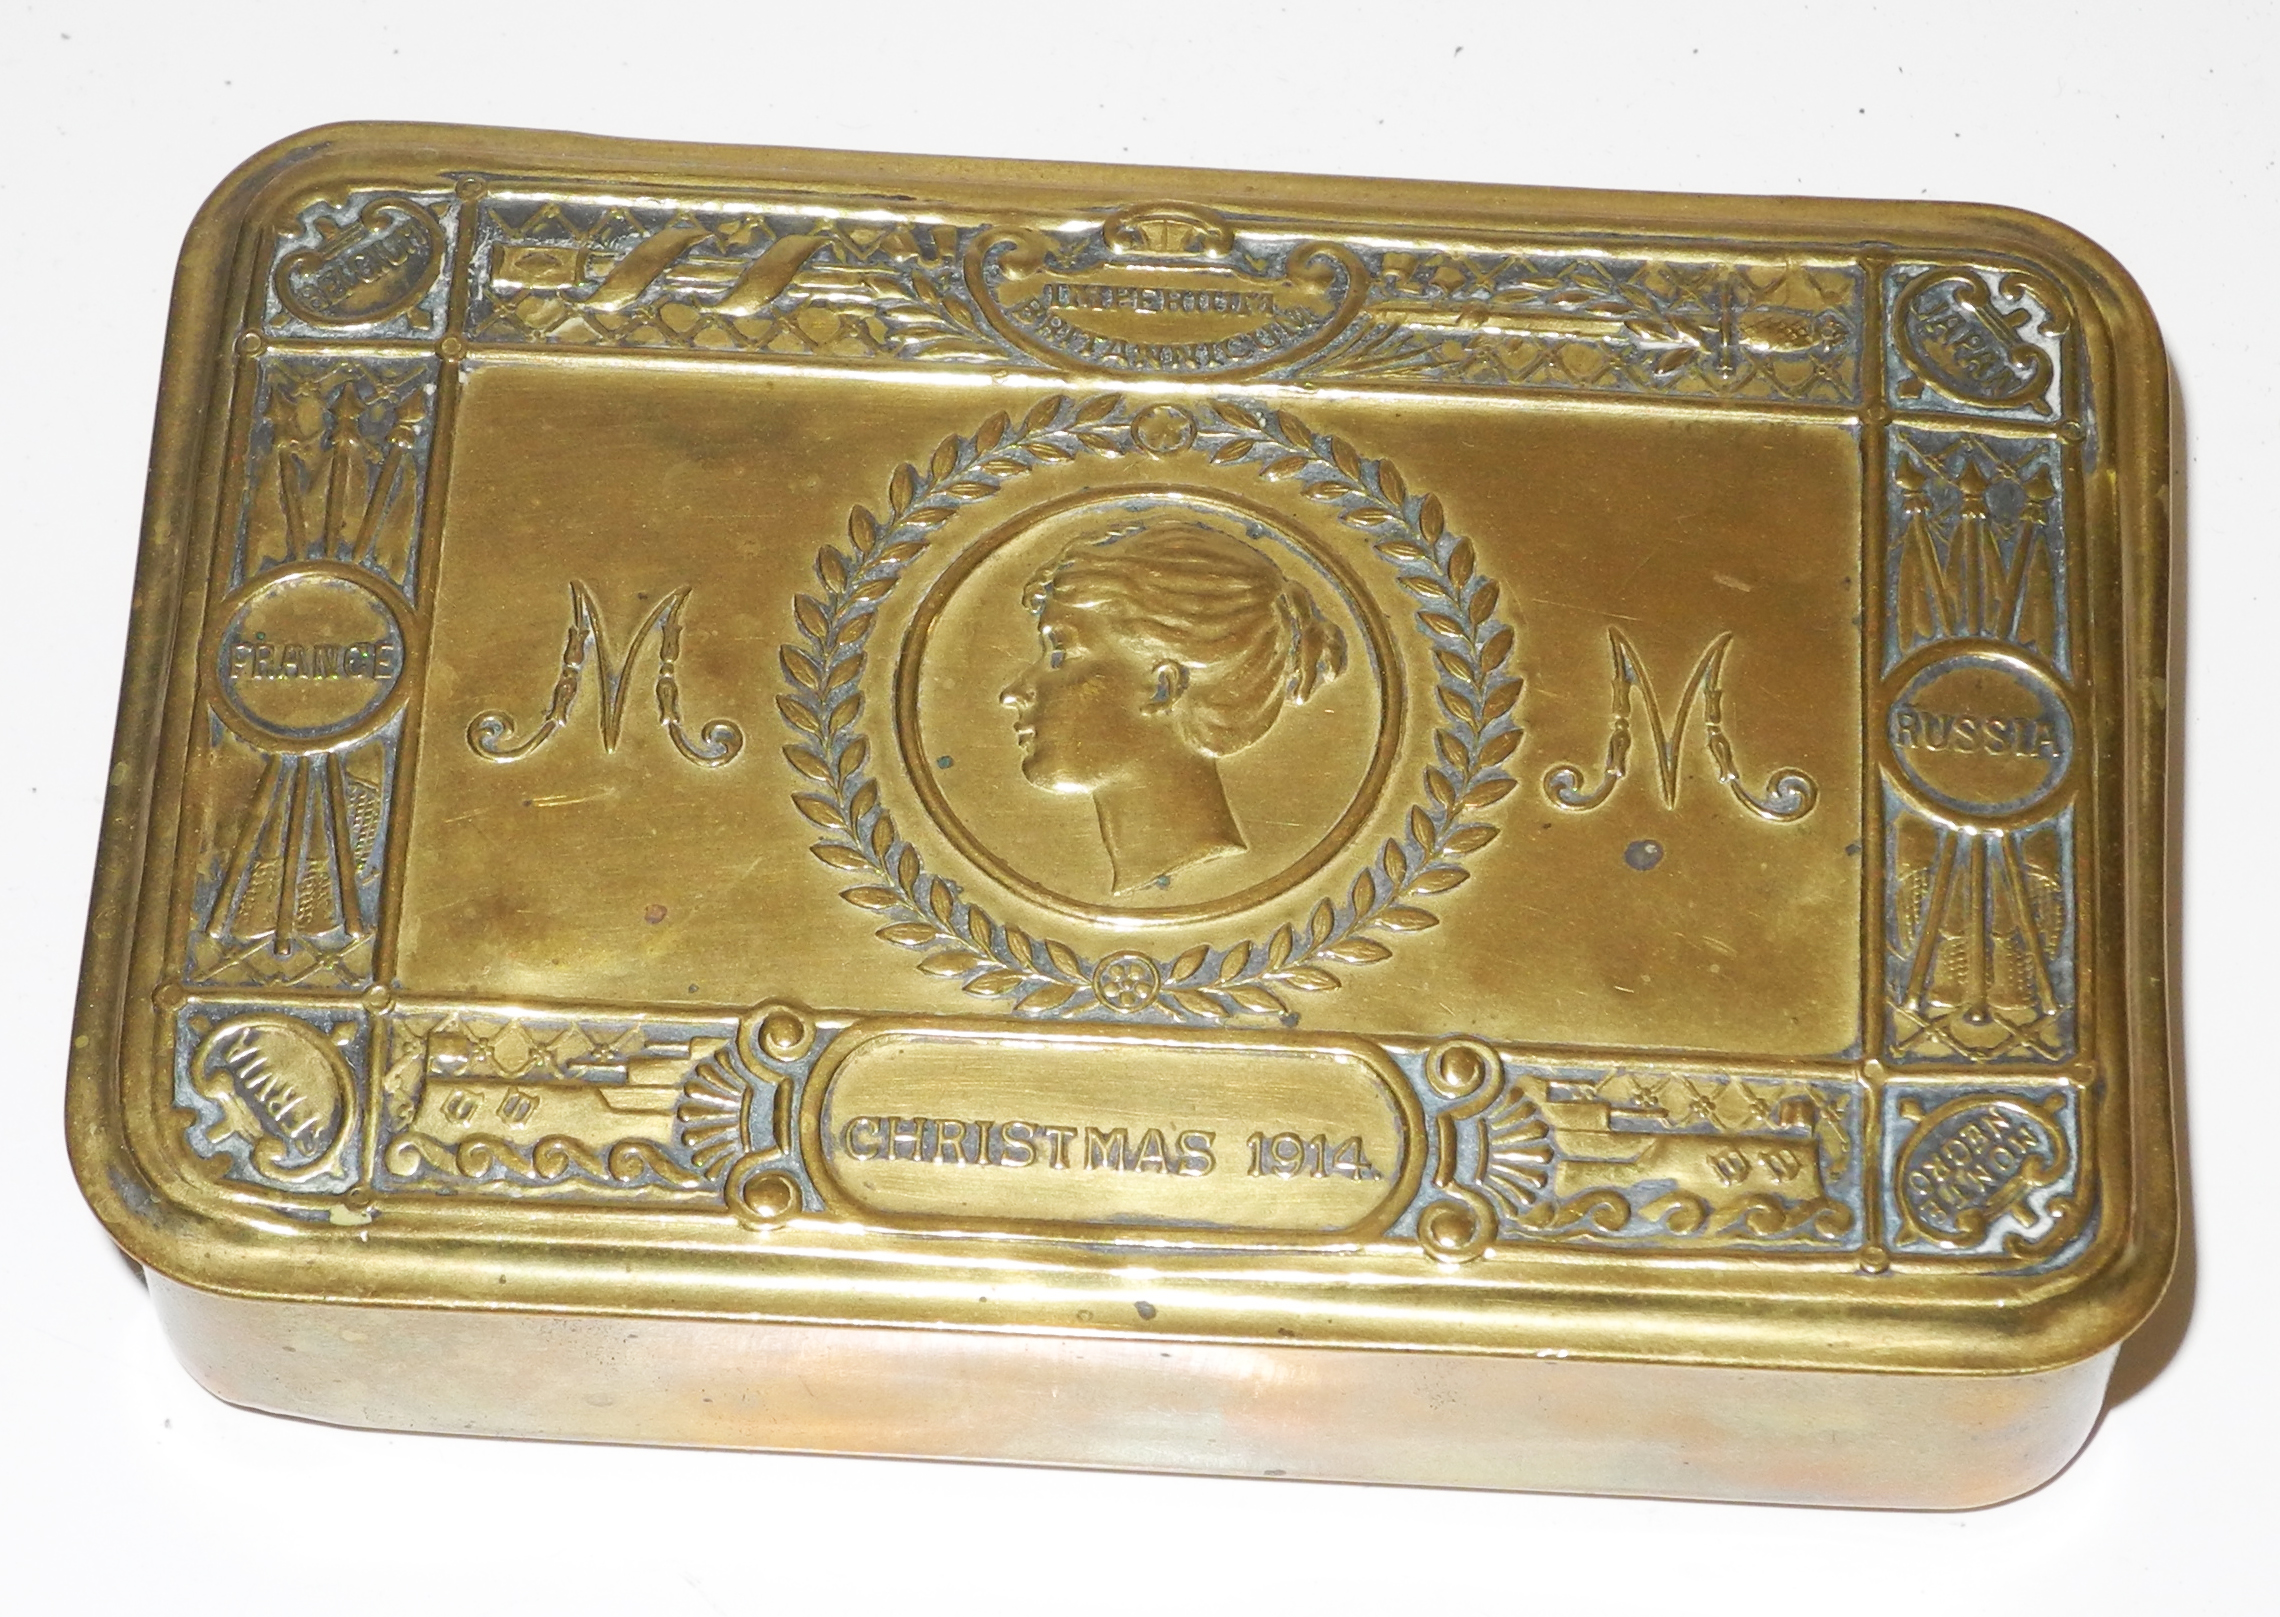 Princess Mary Christmas Gift Chocolate tin 1914